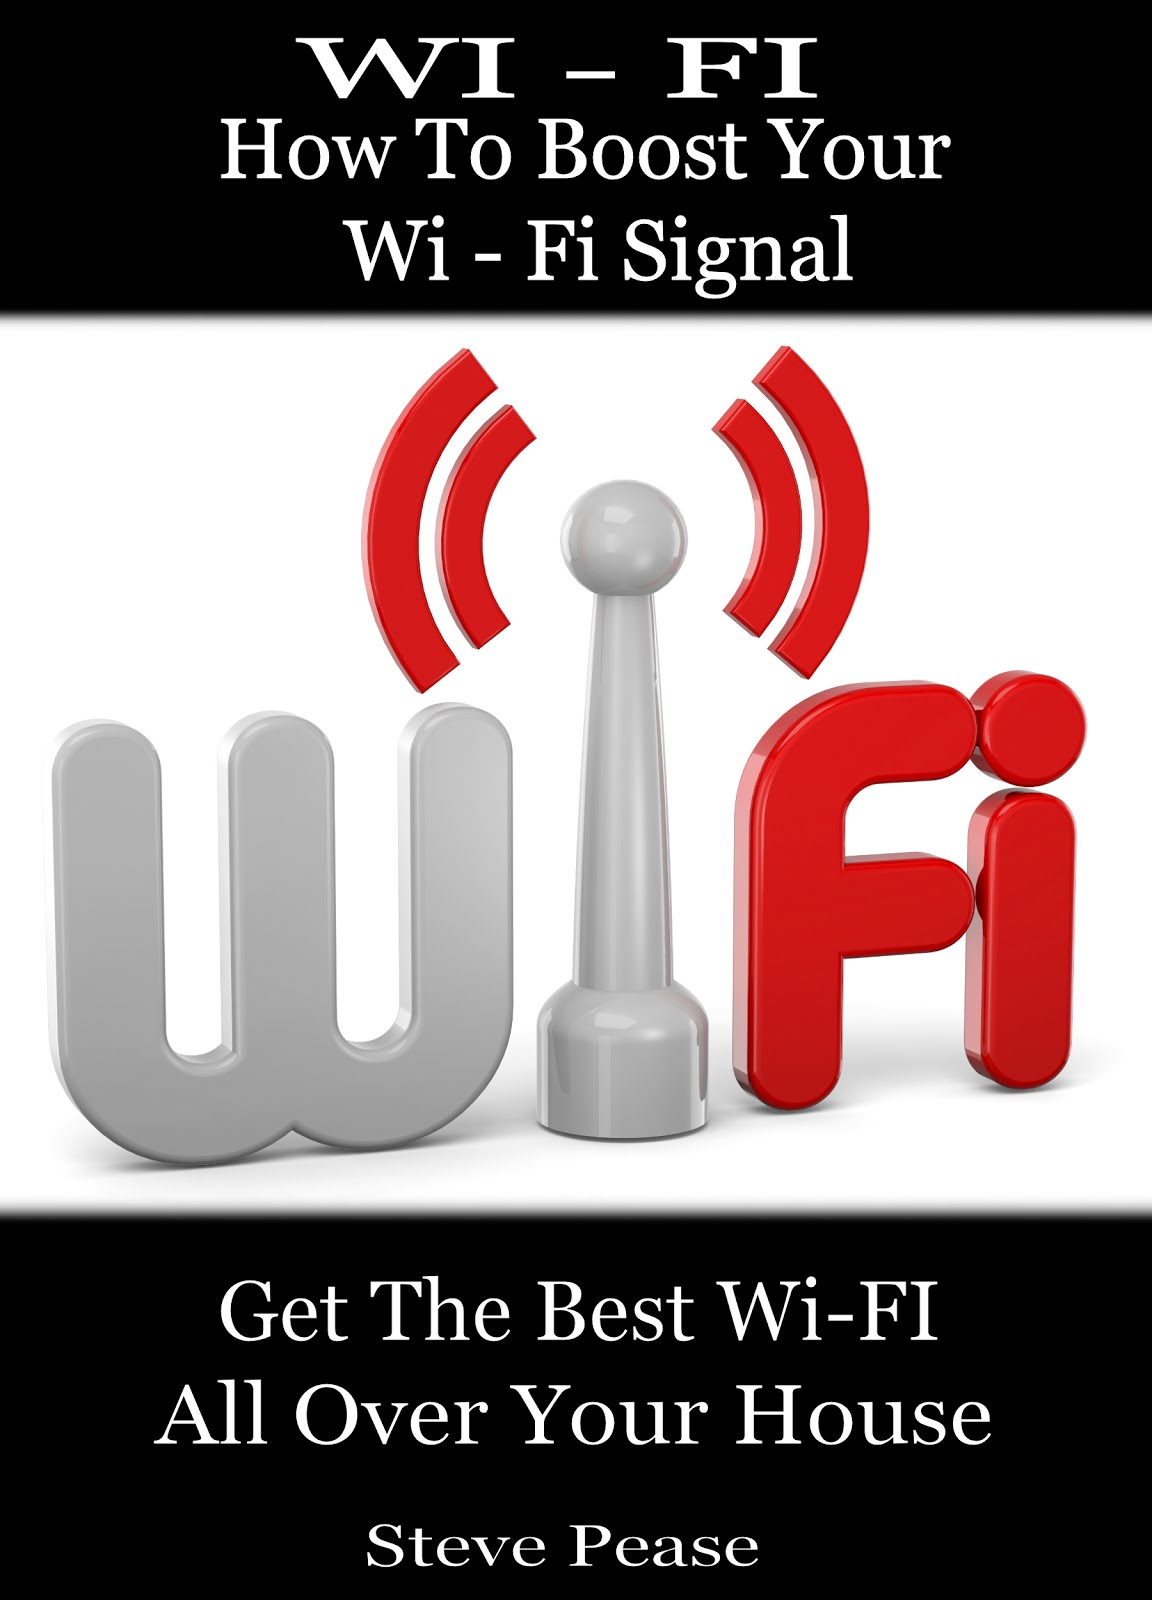 FIX YOUR WI FI